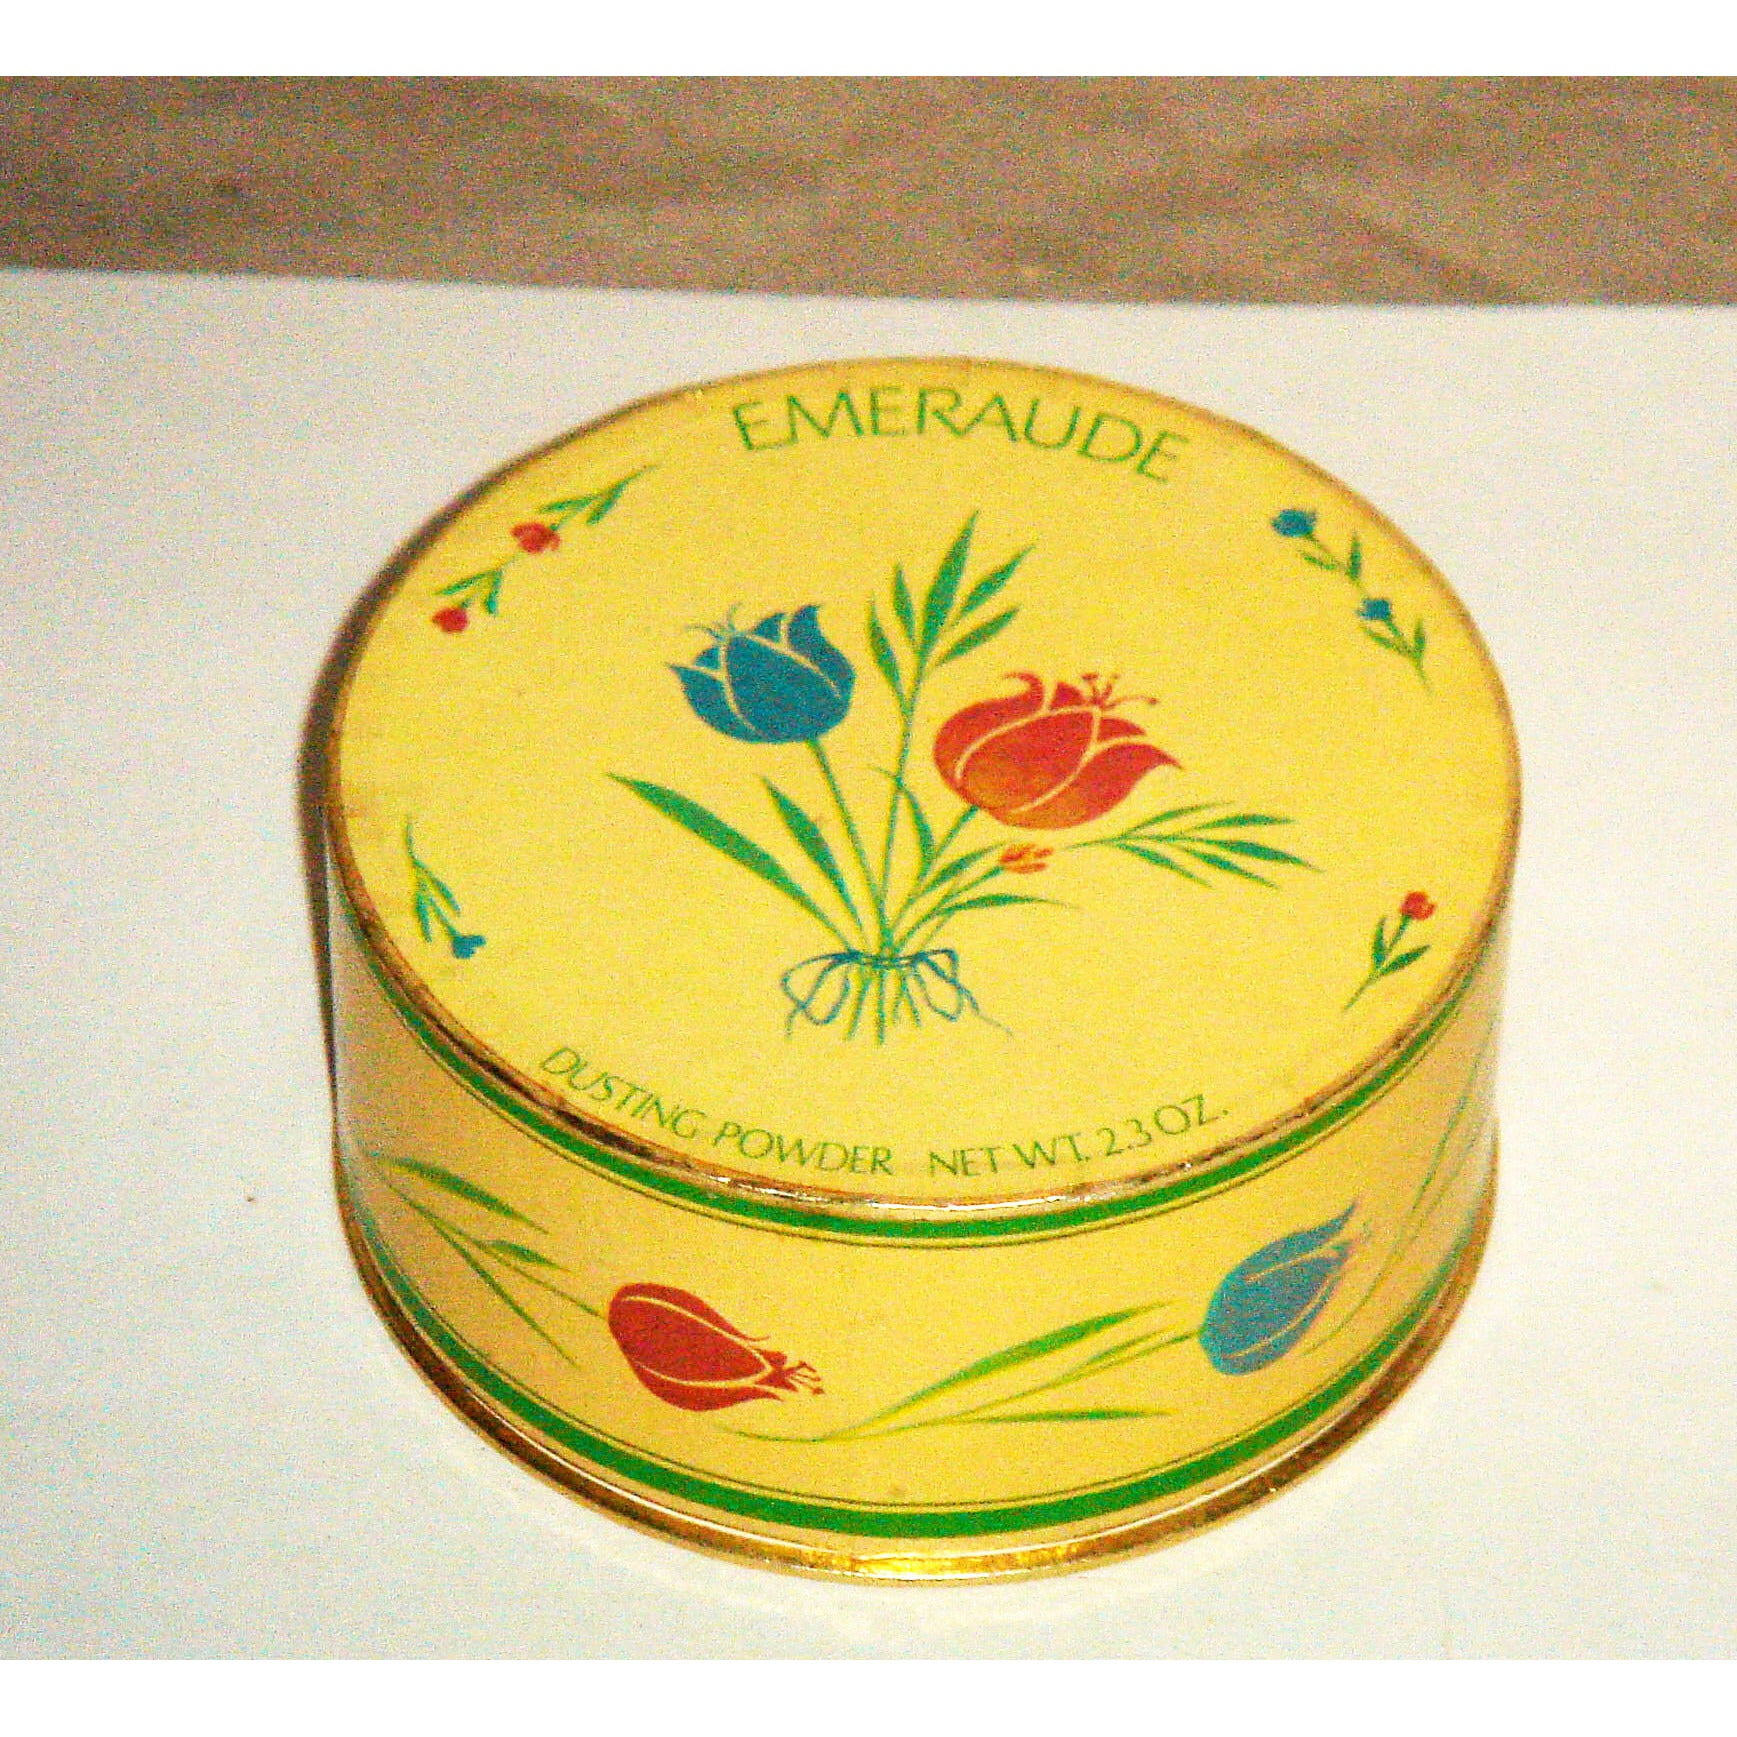 Vintage Emeraude Dusting Powder By Coty